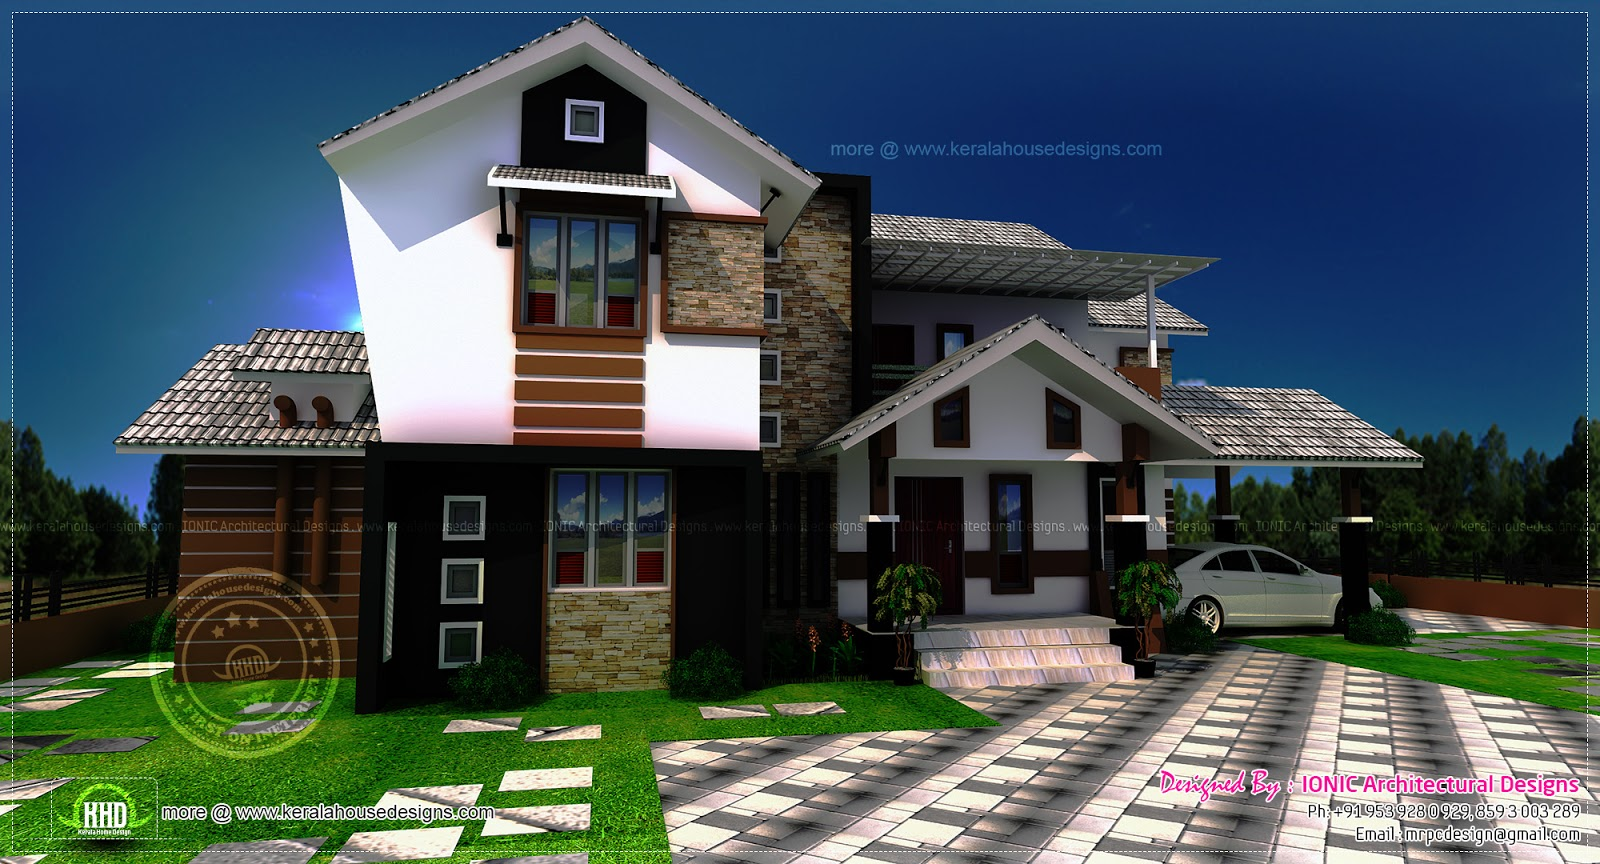 3 bedroom house exterior design in 200 square yards